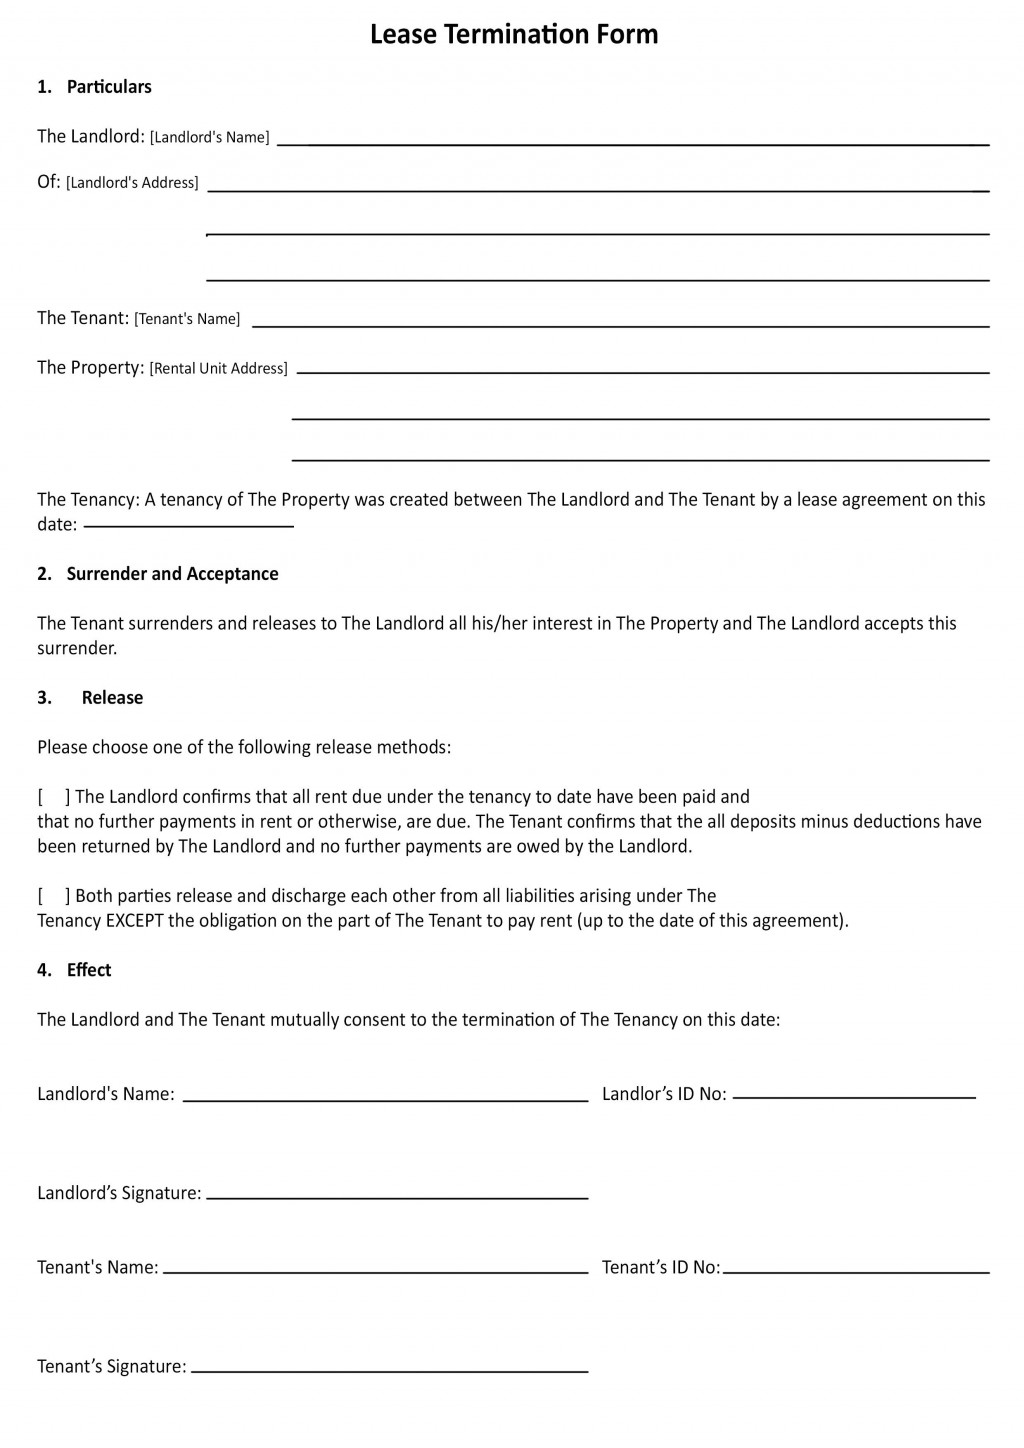 008 Stunning Lease Agreement Template Word South Africa High Definition  Free Simple Residential Commercial DocumentLarge